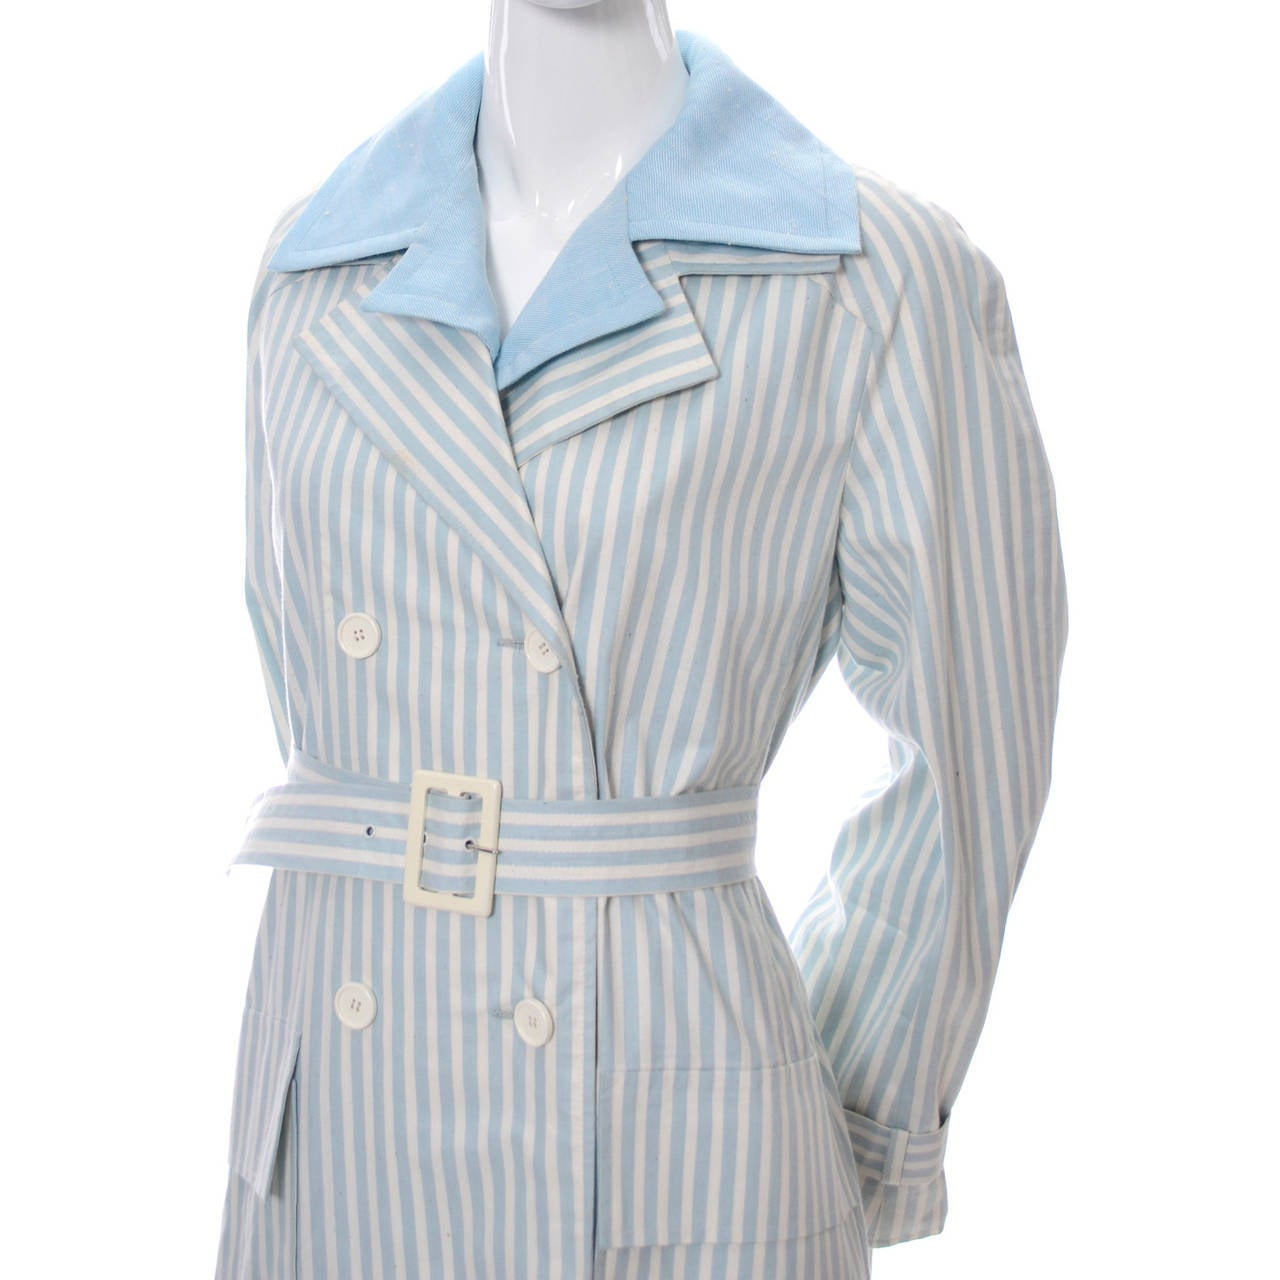 Givenchy Nouvelle Boutique 1970s Blue Vintage Dress and Striped Coat Outfit 7